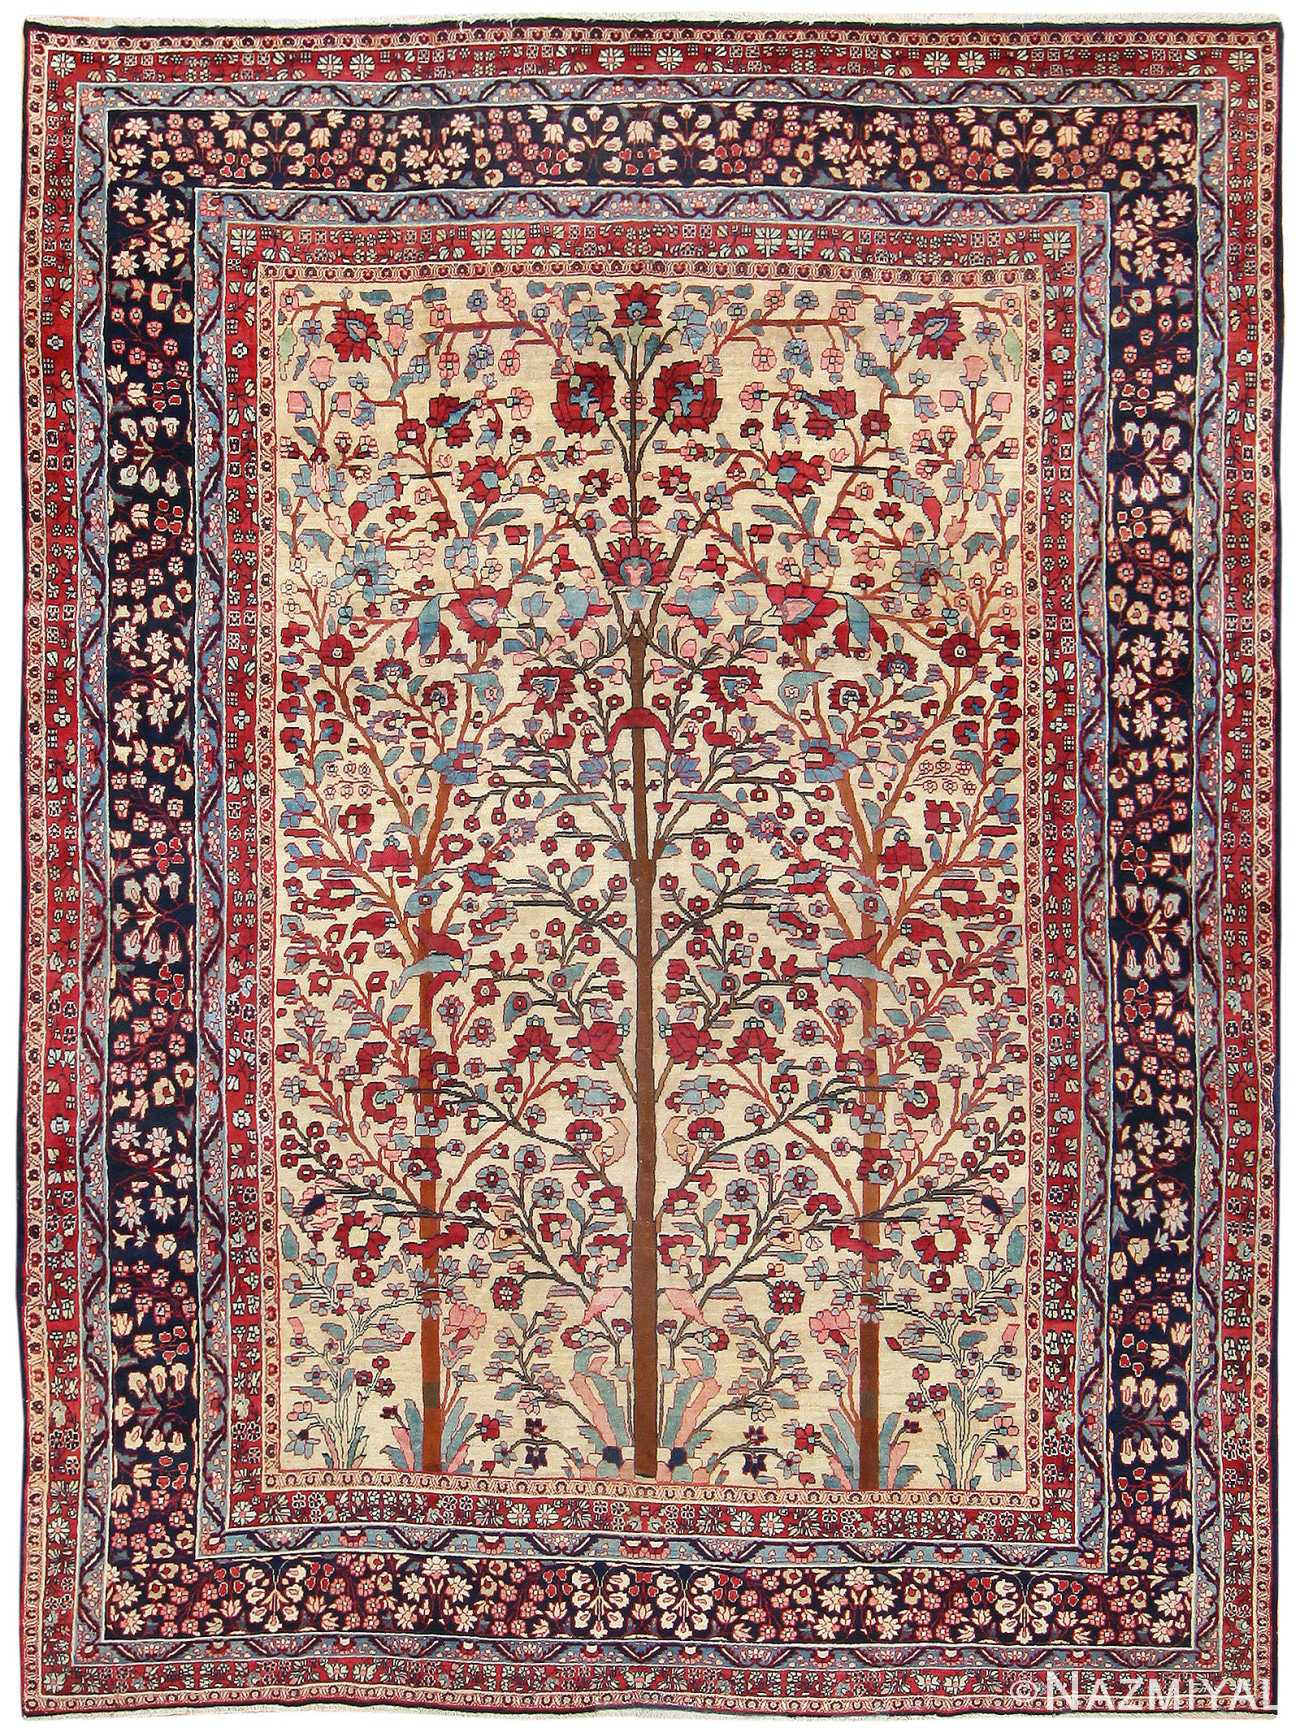 Antique Persian Khorassan Rug With Tree Of Life Design